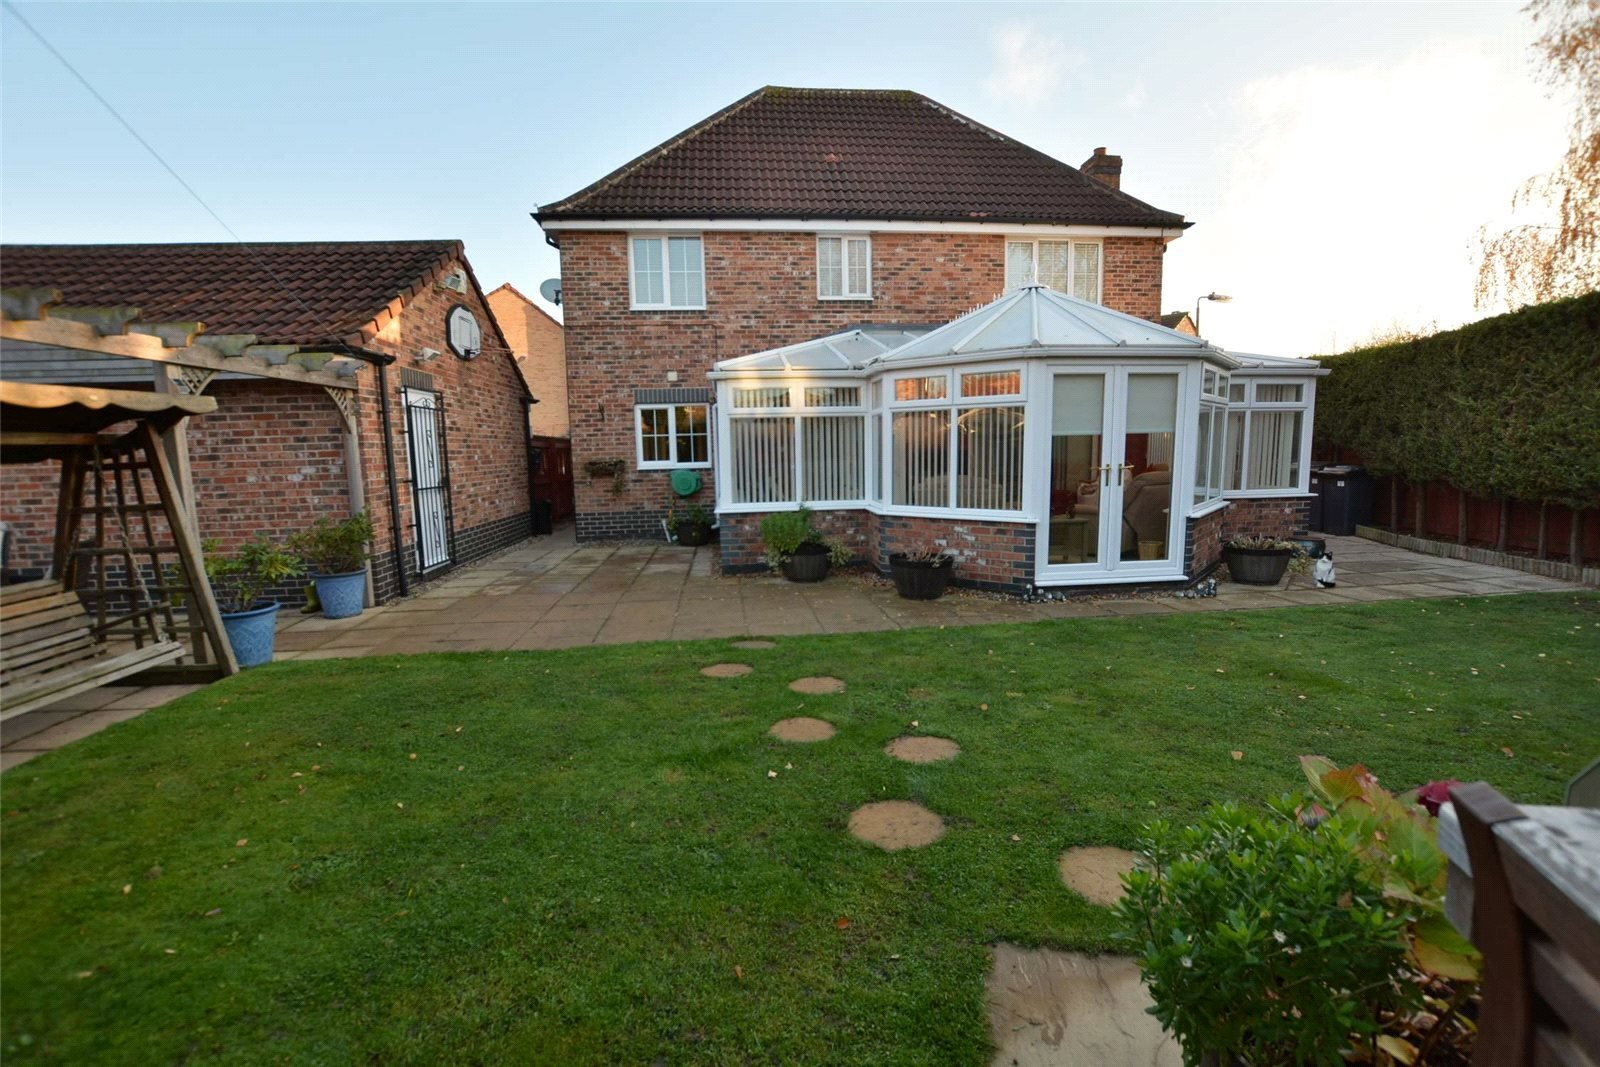 Property for sale in Rothwell